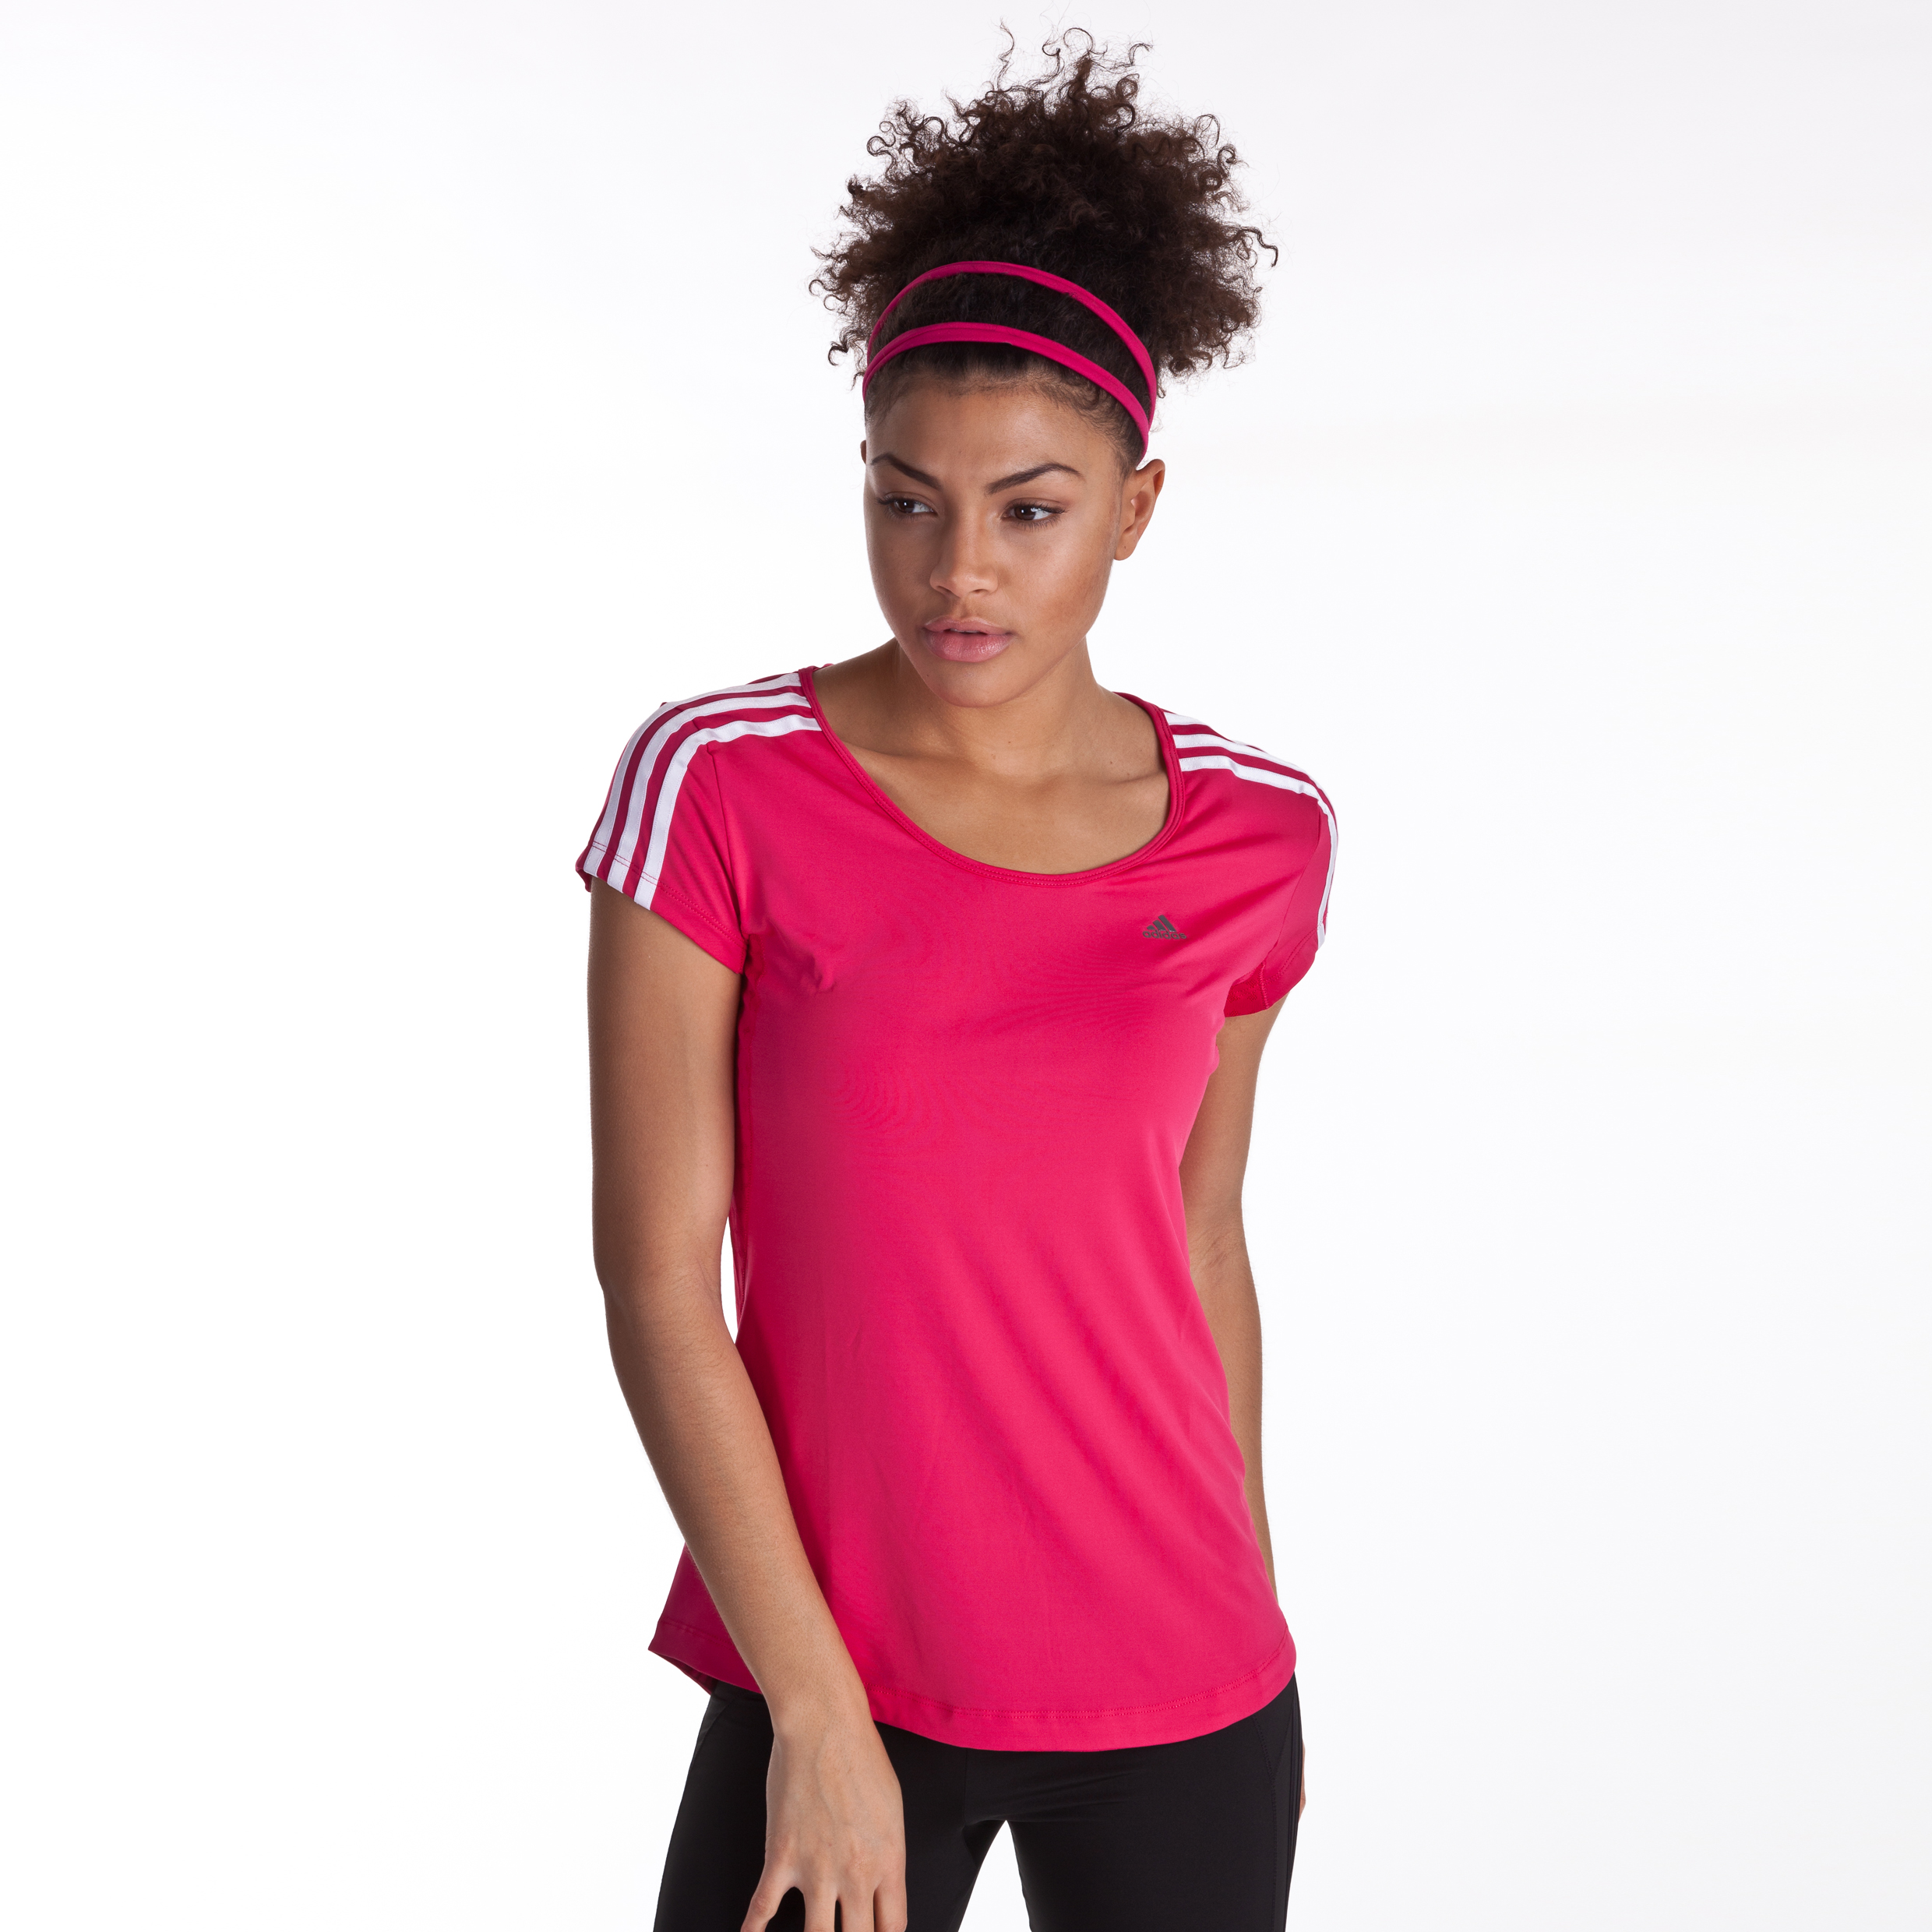 Adidas CLIMACOOL Training 3 Stripe Training Tee - Bright Pink - Womens